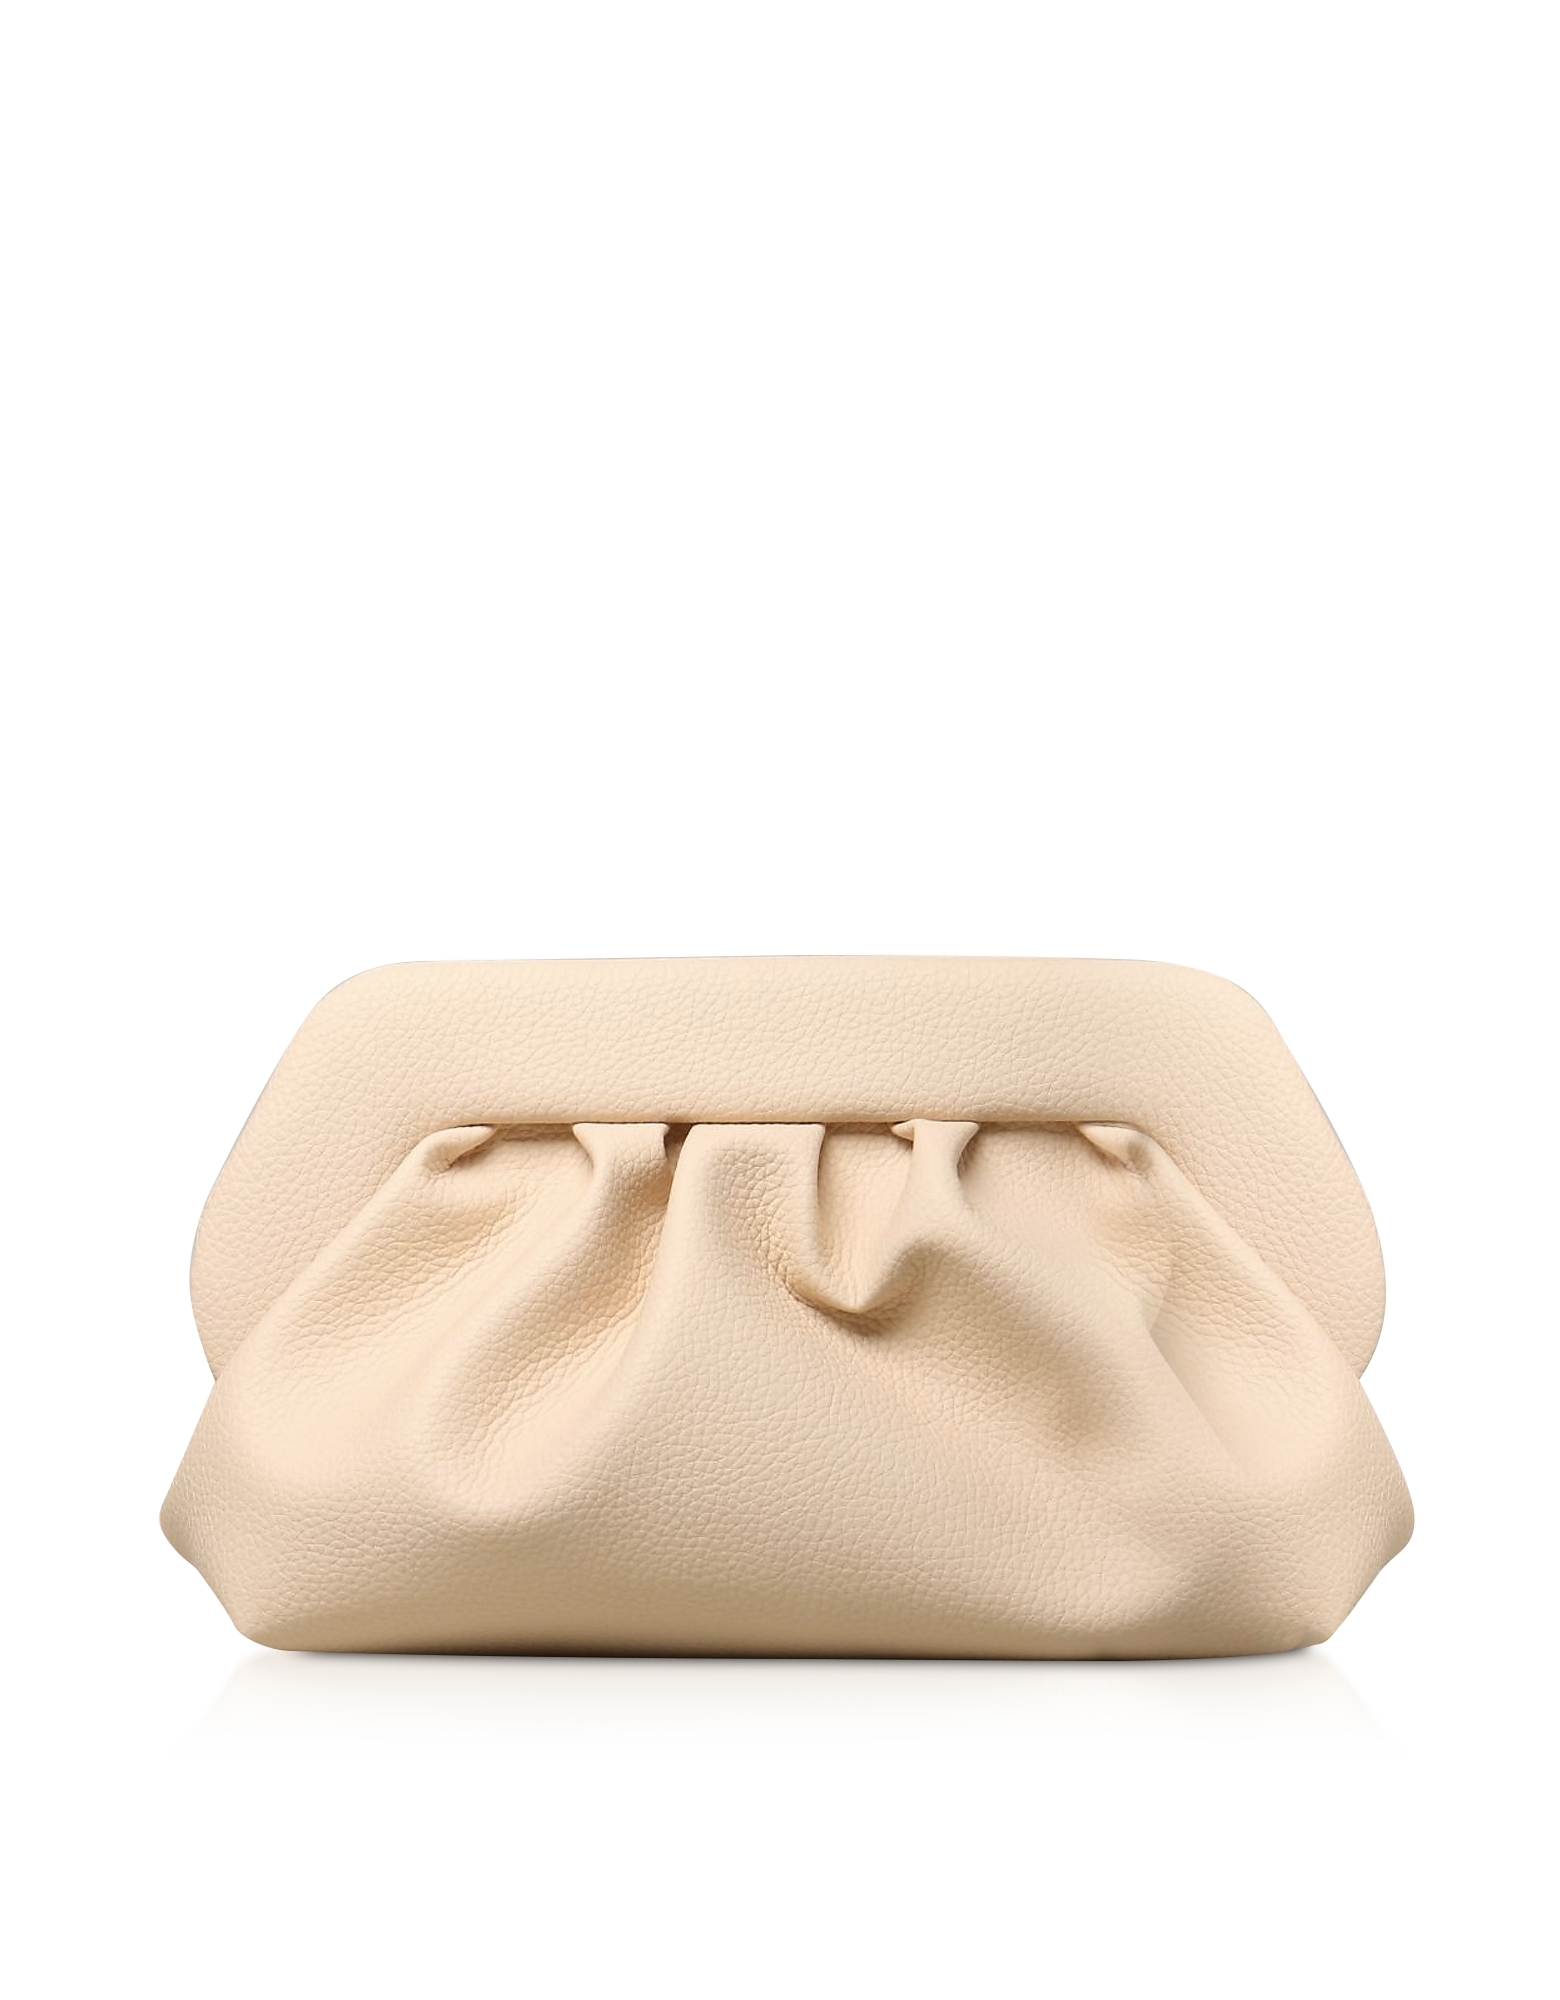 THEMOIRÉ Designer Handbags, Cream Grained Leather Pouch Bag